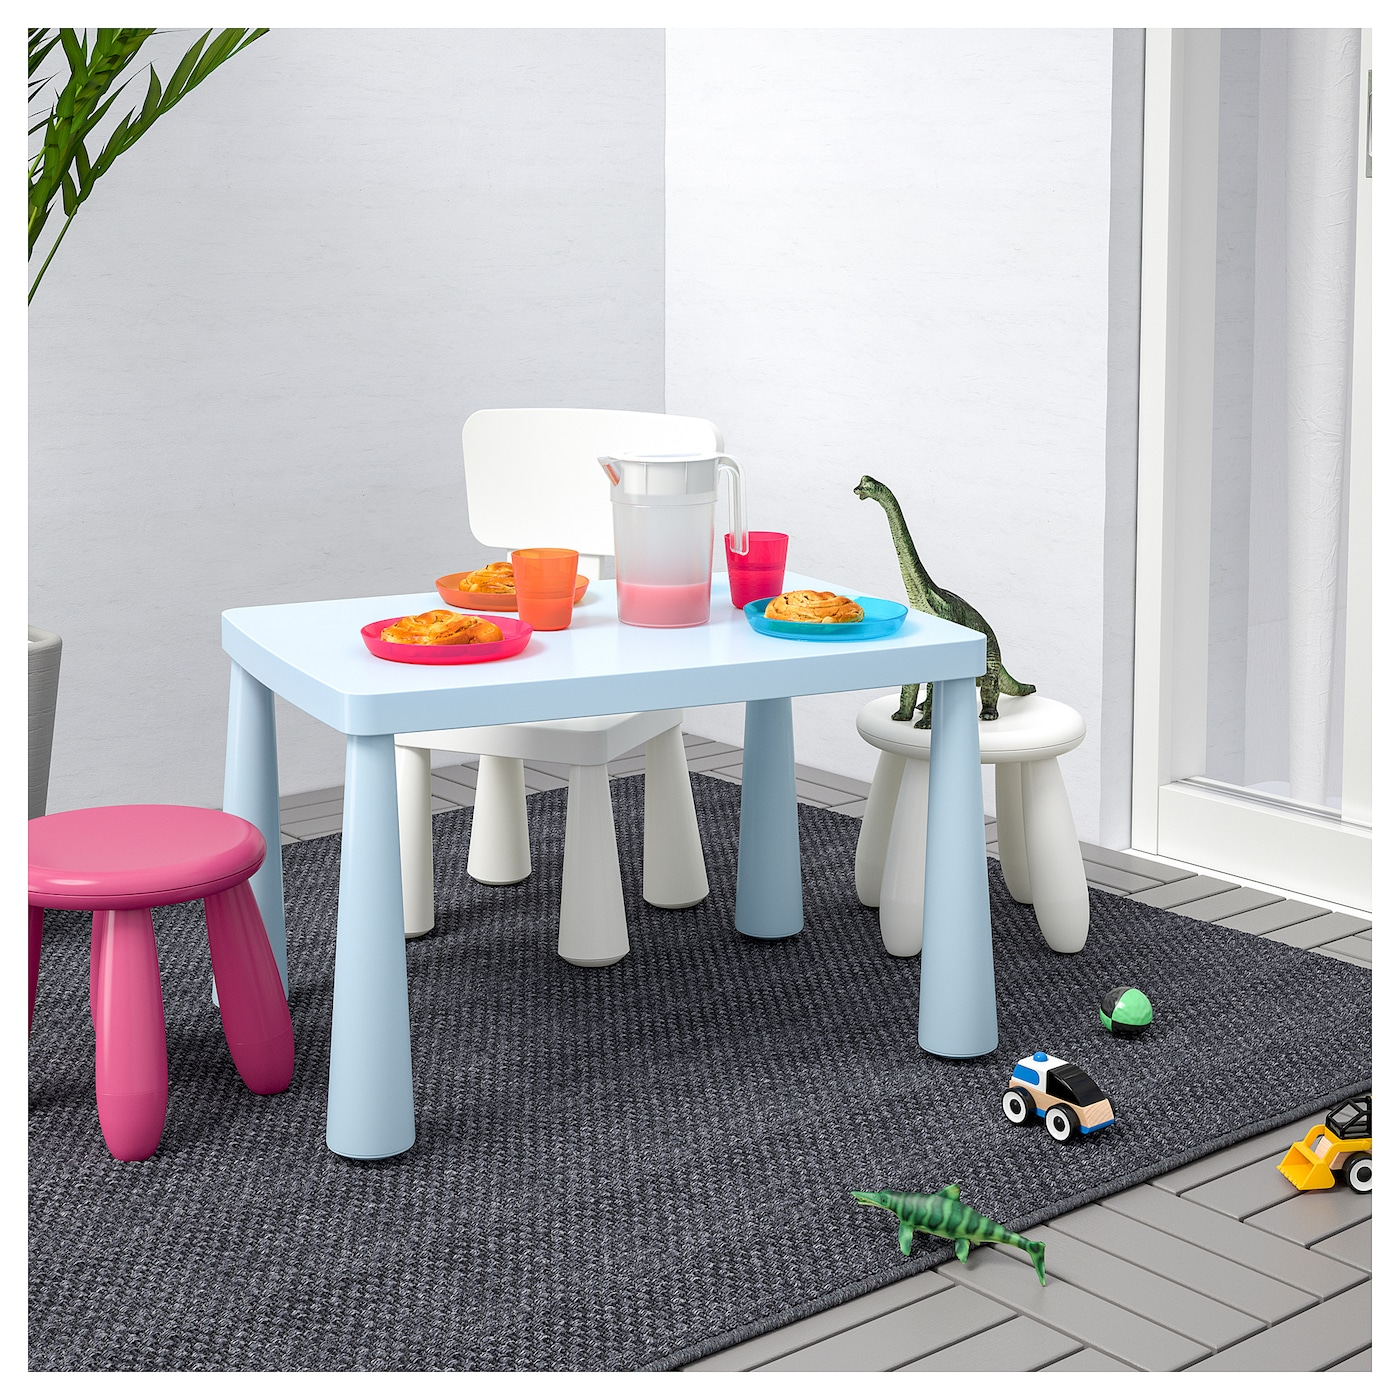 IKEA MAMMUT children's table Easy to assemble – you just click the components together.